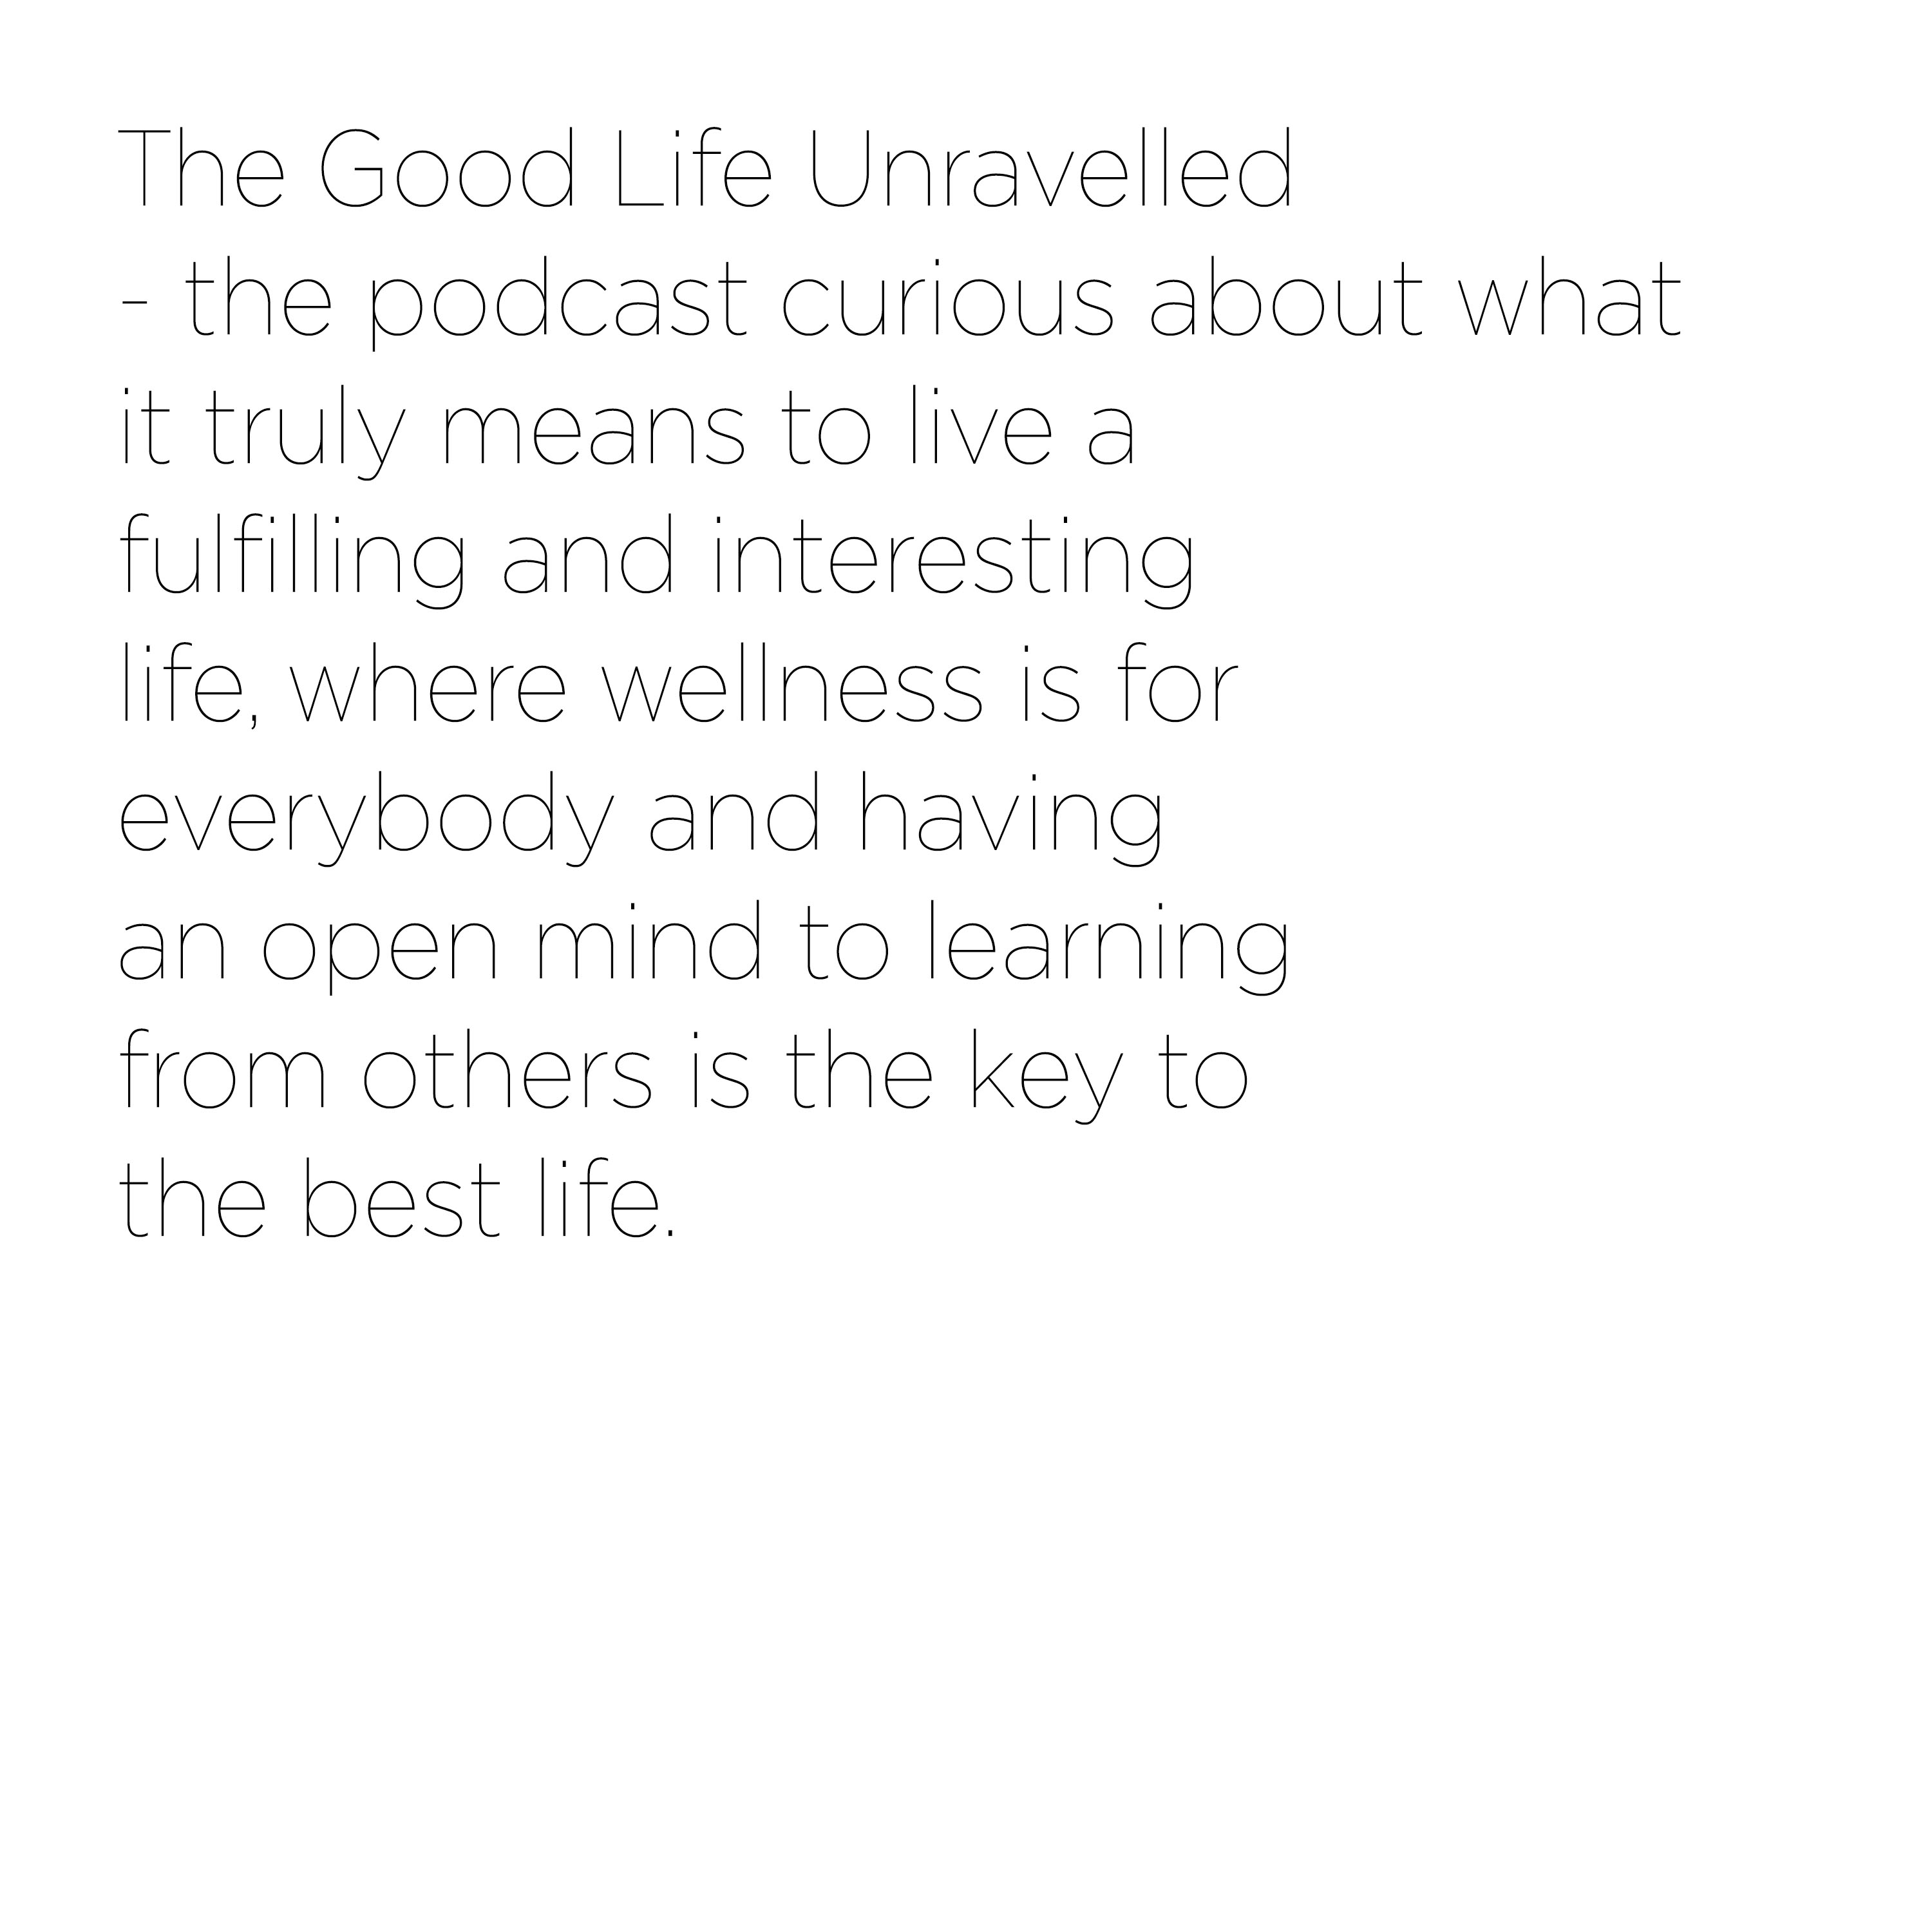 what is good life unravelled